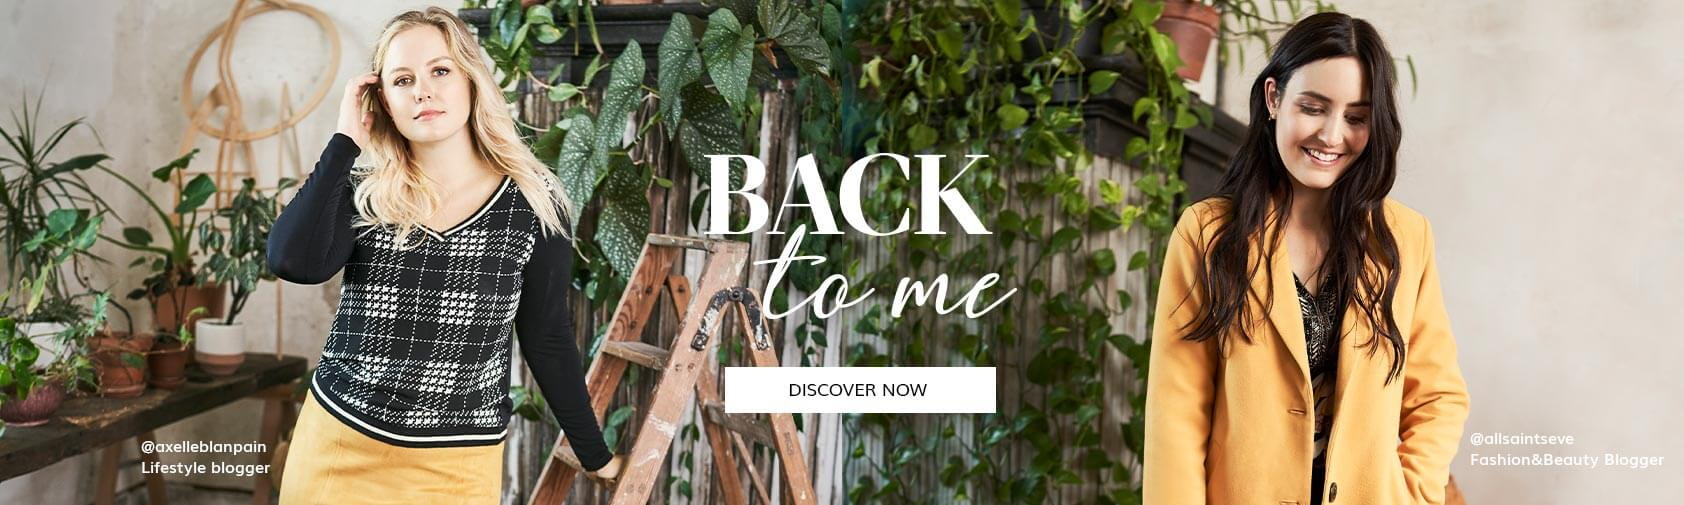 Back to me campaign